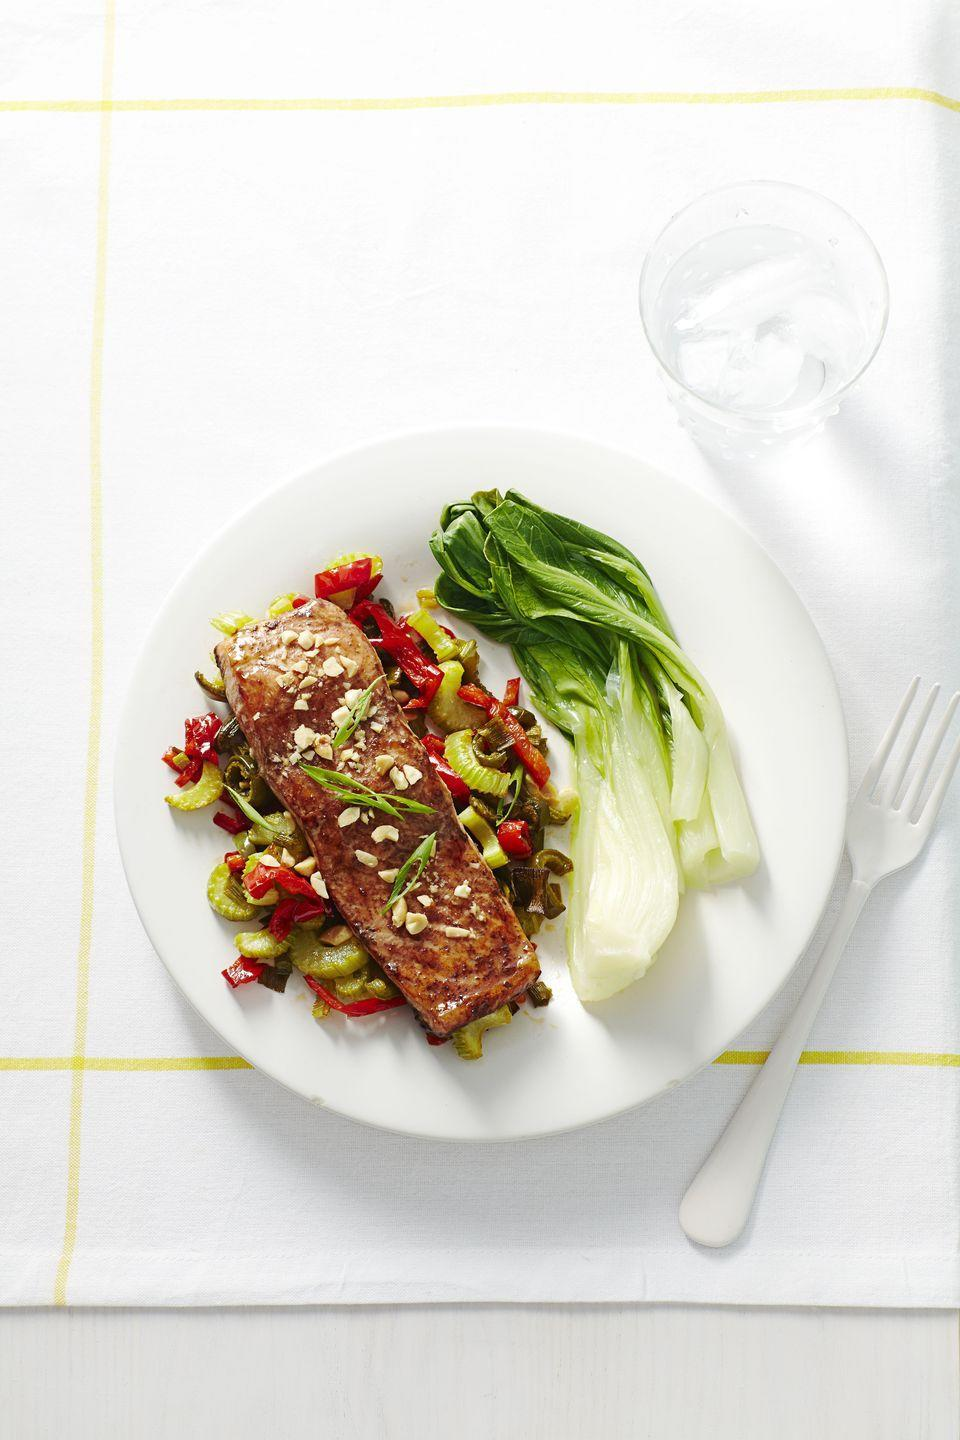 """<p>Ready in under 30 minutes, this tasty dinner fits within the low-carb, high-protein Atkins diet. It also fits into the """"I want food that is delicious <em>and </em>healthy ASAP"""" meal plan. </p><p><em><a href=""""https://www.goodhousekeeping.com/food-recipes/a16349/spicy-soy-glazed-salmon-recipe-ghk0115/"""" rel=""""nofollow noopener"""" target=""""_blank"""" data-ylk=""""slk:Get the recipe for Spicy Soy-Glazed Salmon »"""" class=""""link rapid-noclick-resp"""">Get the recipe for Spicy Soy-Glazed Salmon »</a></em> </p>"""